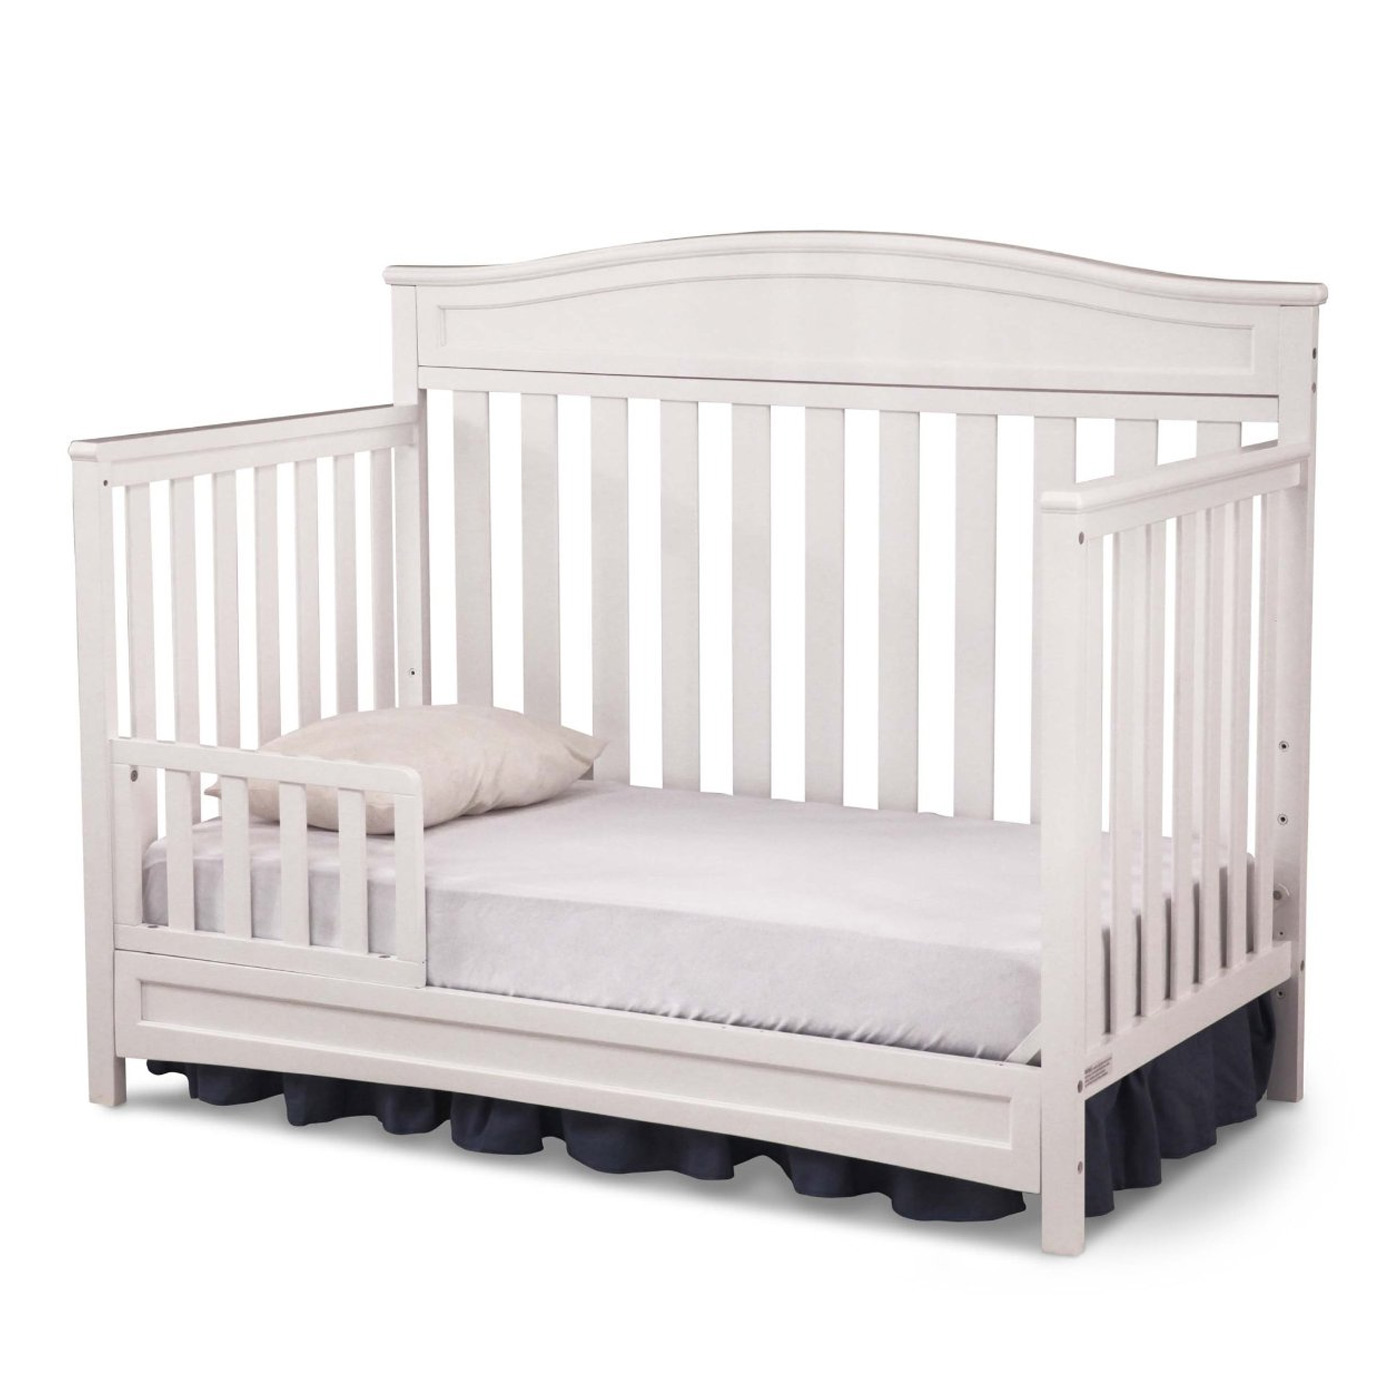 jayden shipping garden overstock free davinci in product home today convertible crib